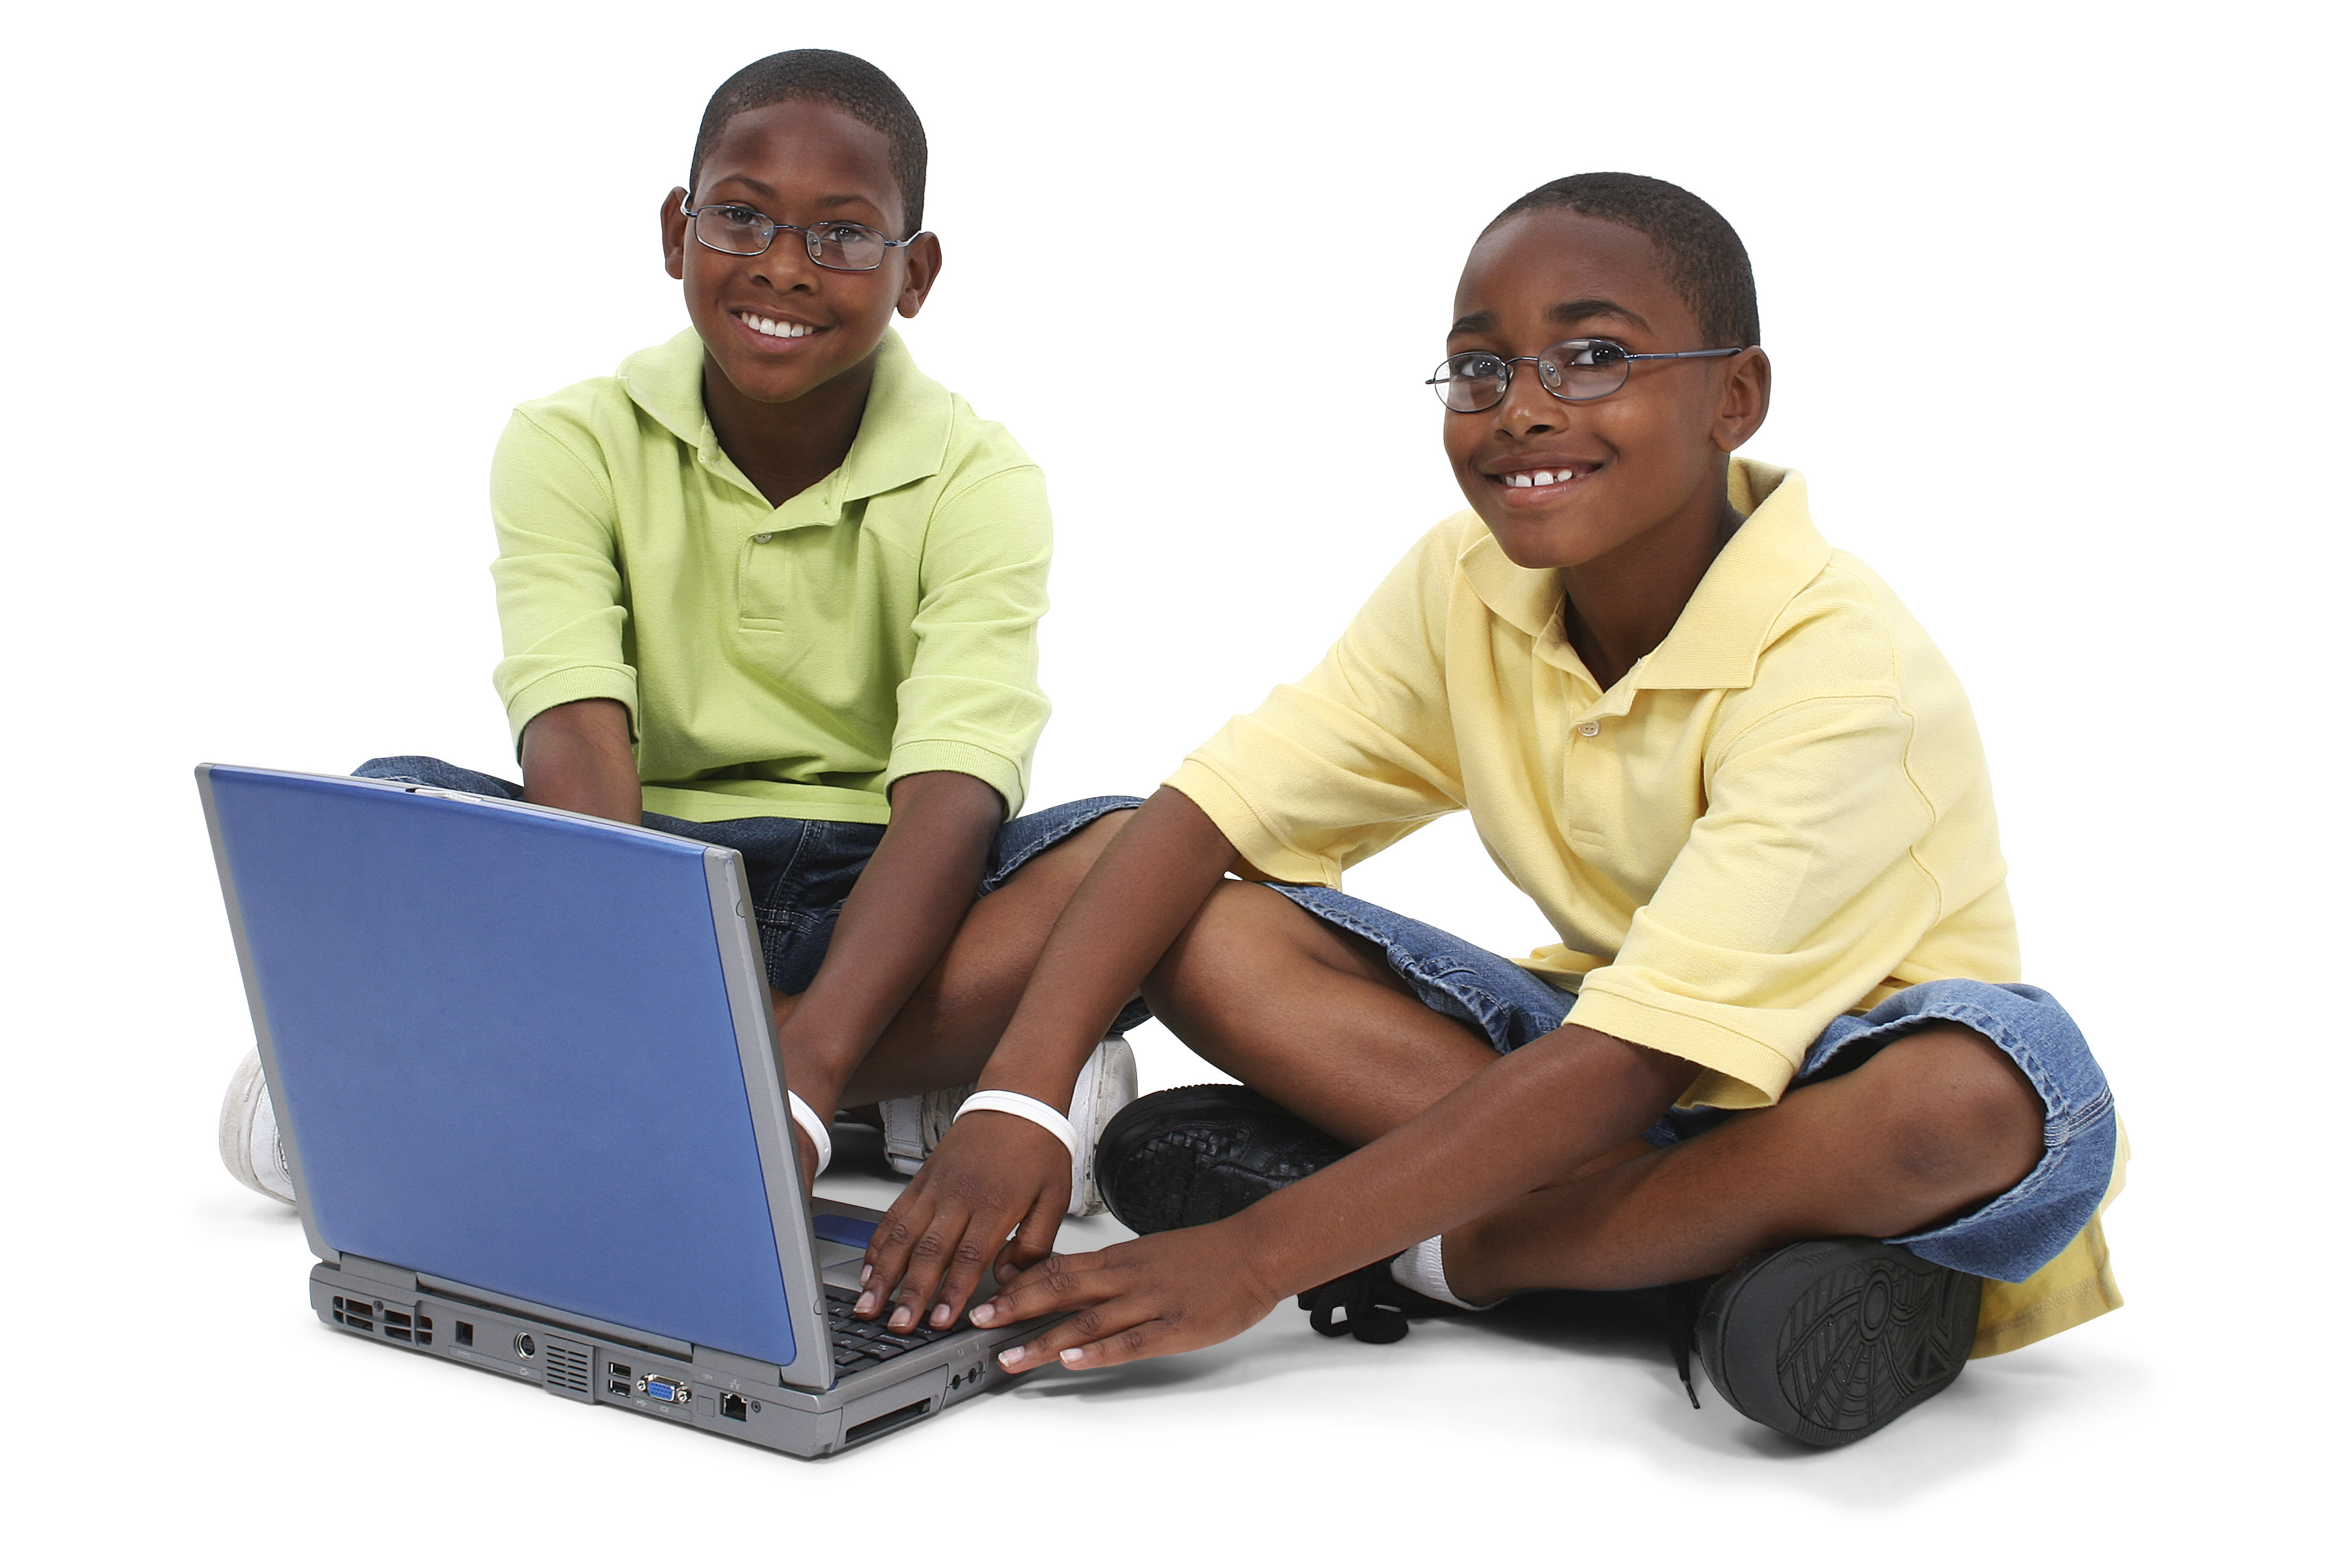 a history of schooling for african american children African american history for kids  connecting kids with black history teaching children about the historical accomplishments and struggles of african americans.